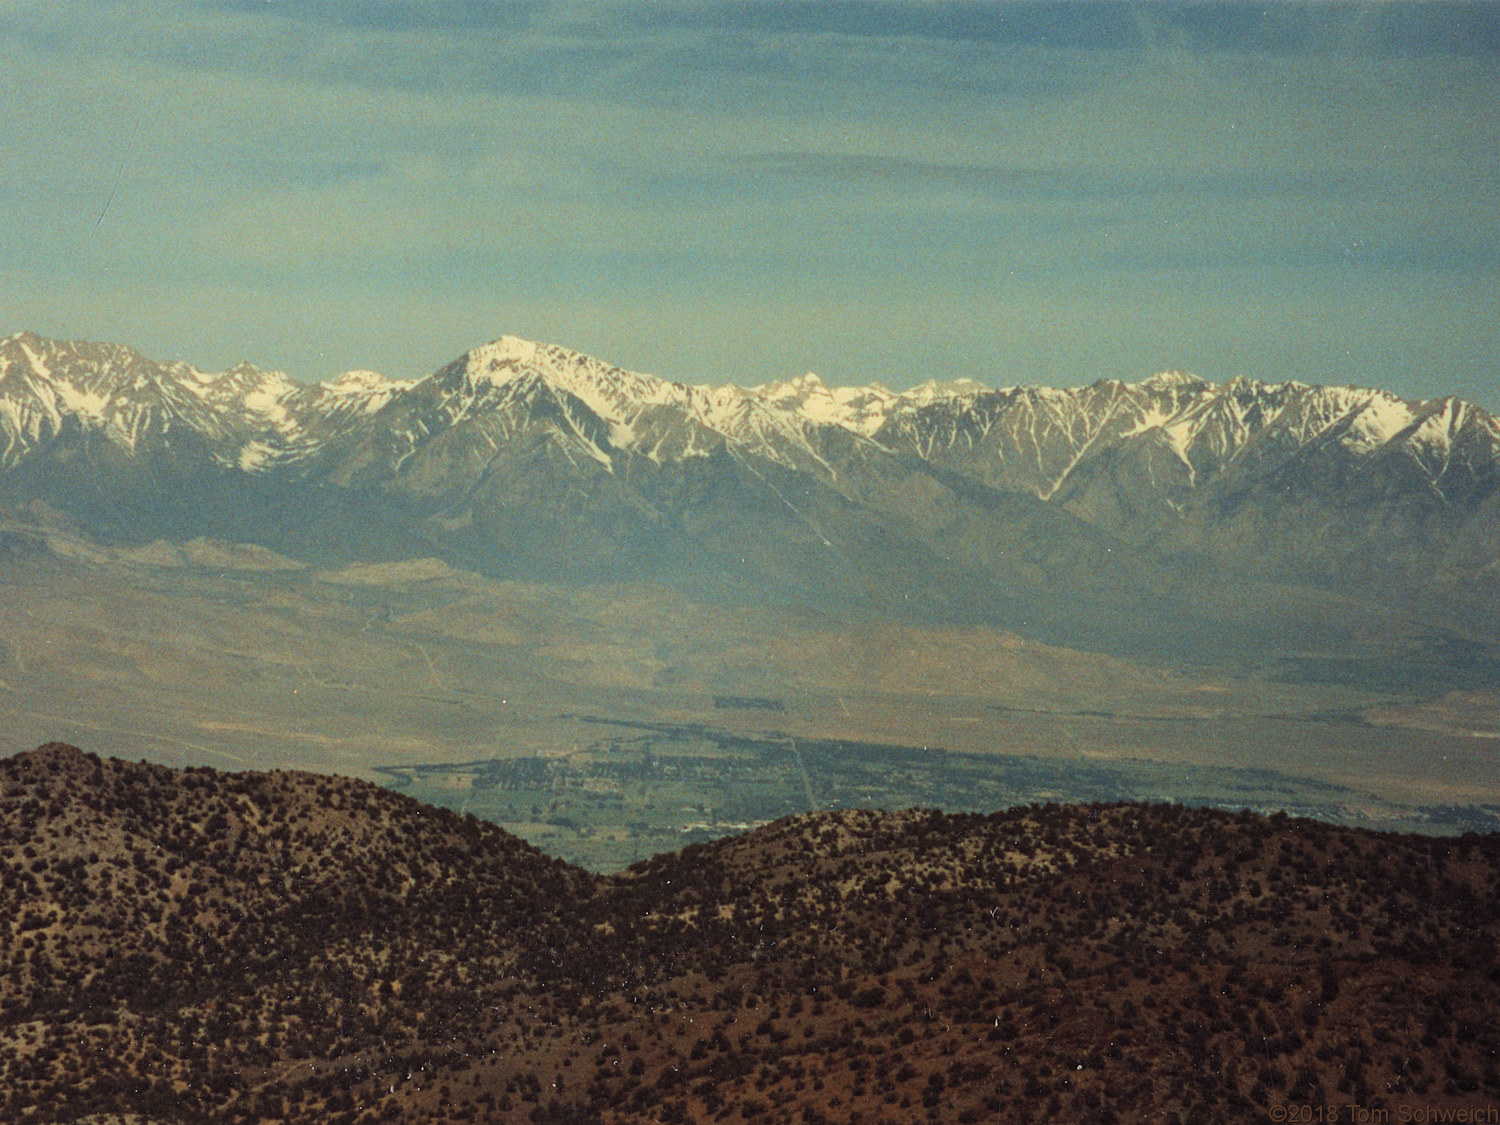 California, Inyo County, Owens Valley